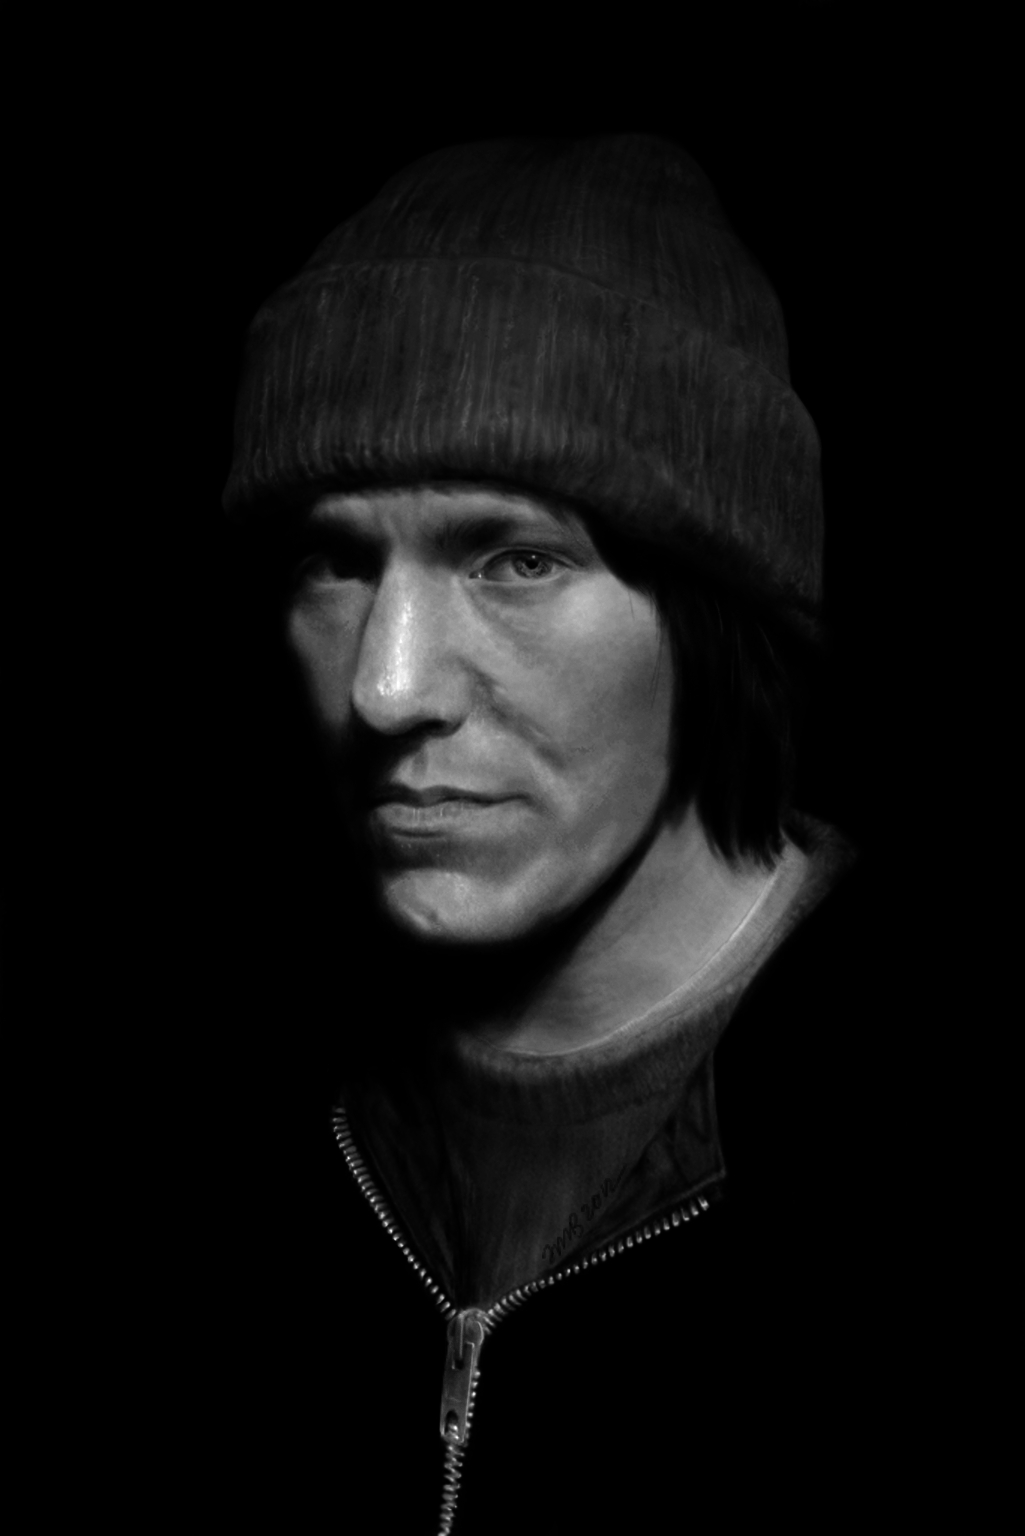 Elliott Smith by solublepop on DeviantArt